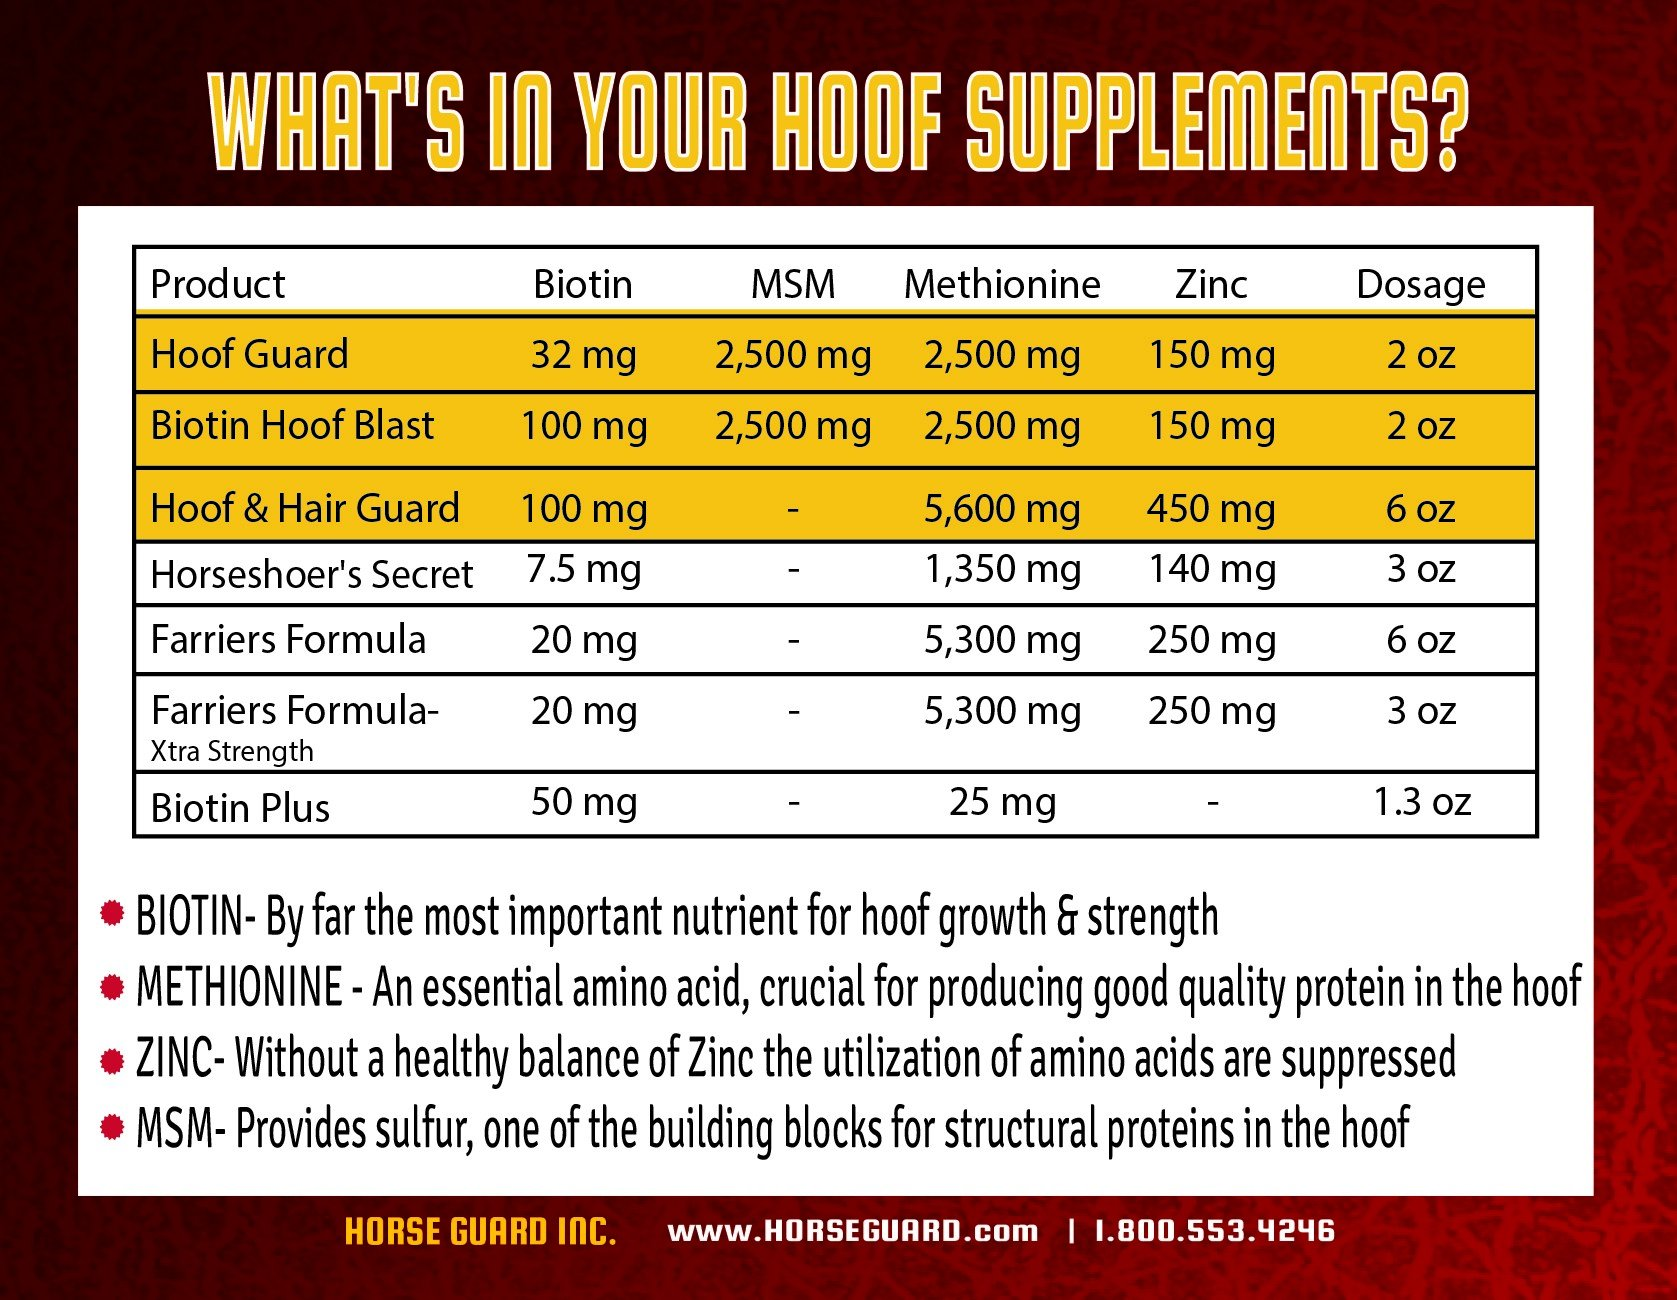 Horse Guard HOOF & HAIR GUARD EQUINE HOOF SUPPLEMENT AND EQUINE COAT SUPPLEMENT WITH AMINO ACIDS, BIOTIN, METHIONINE & SOY OIL, 10 lb by Horse Guard (Image #8)